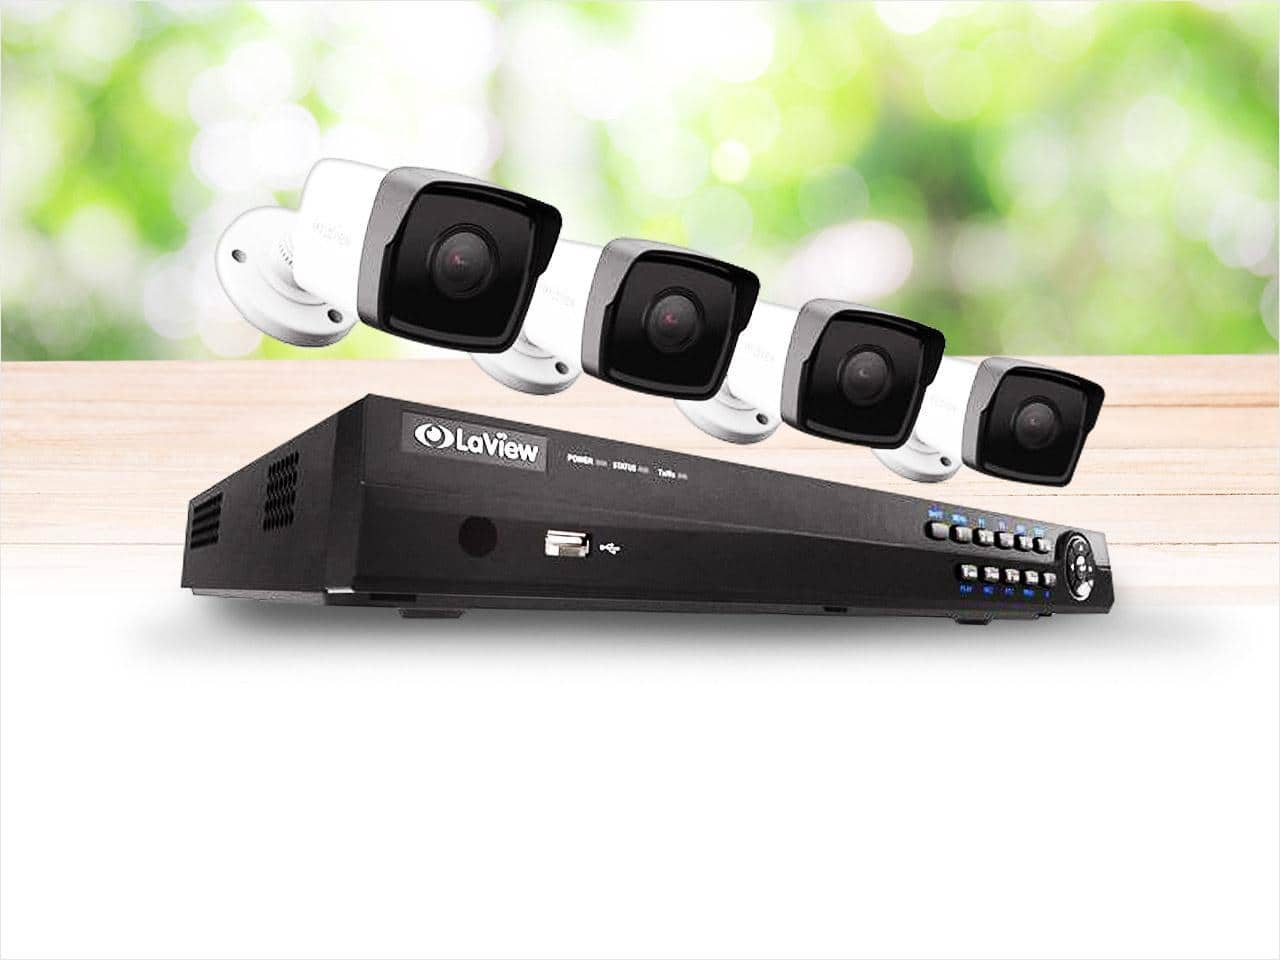 LaView 8Ch NVR 1080p H.264+ PoE IP Security Camera System w/ 4 HD 2MP Cameras $260 + free s/h